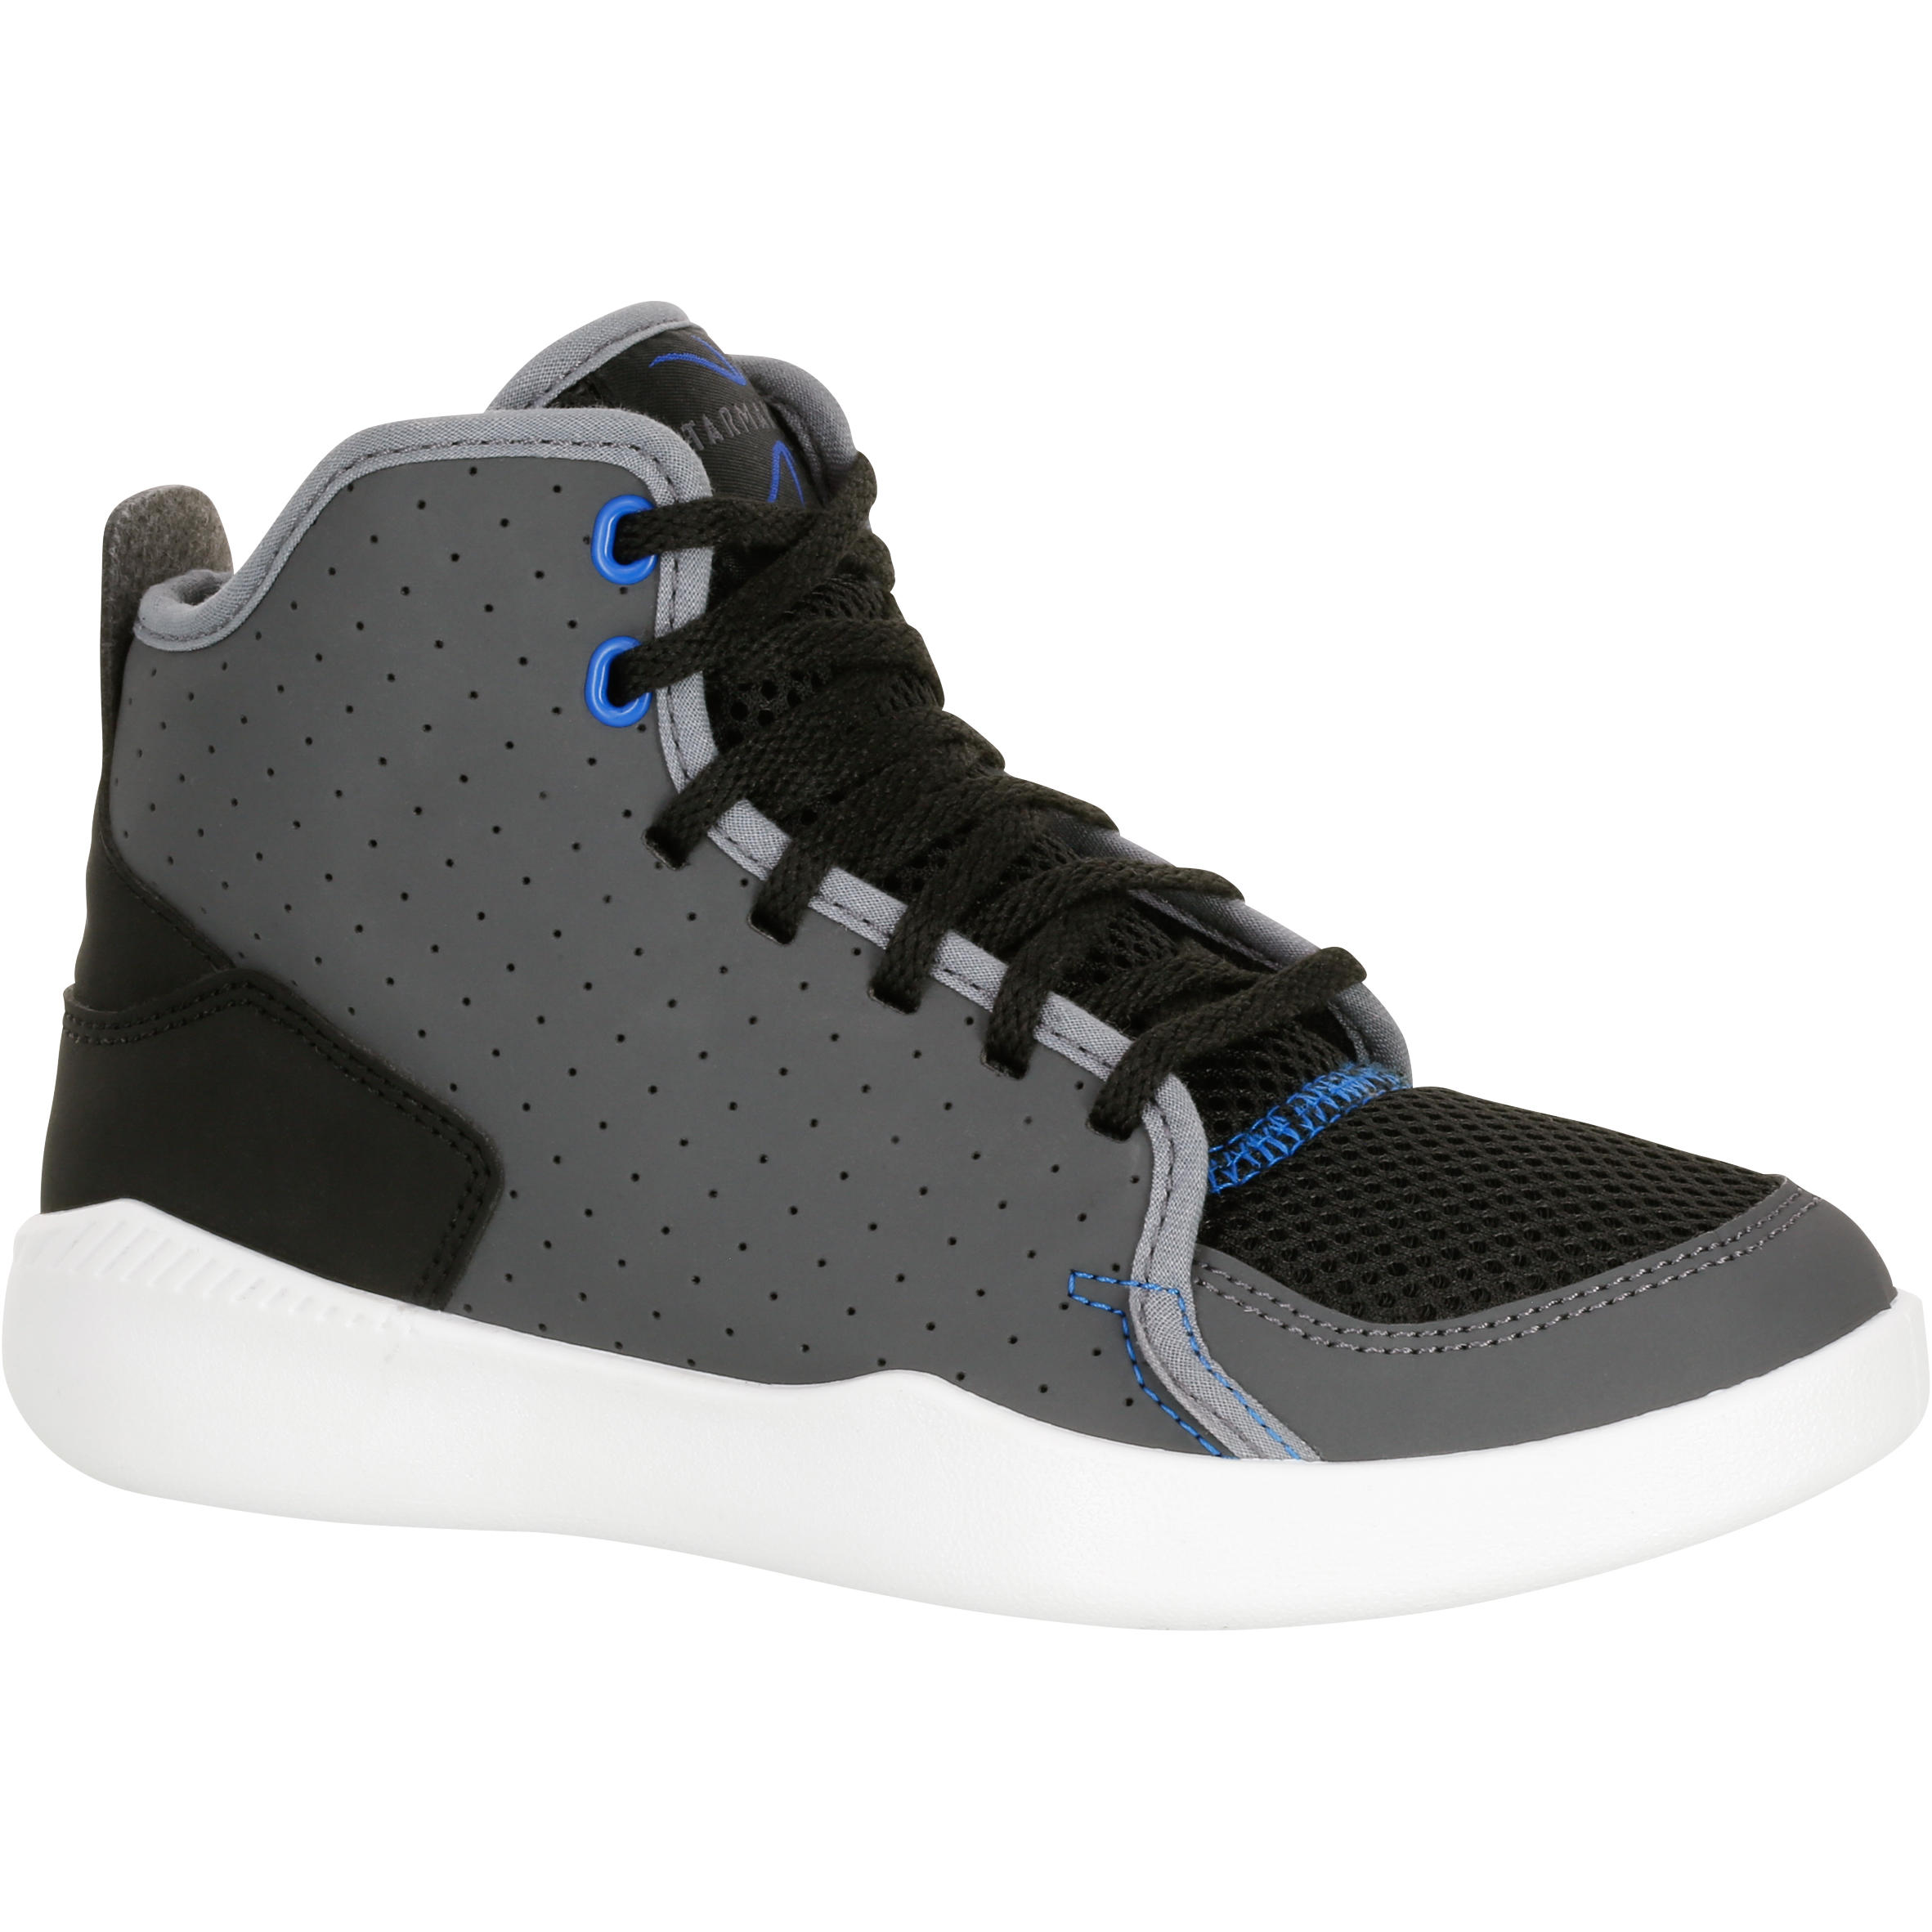 Chaussures de basketball enfant Shield 100 gris